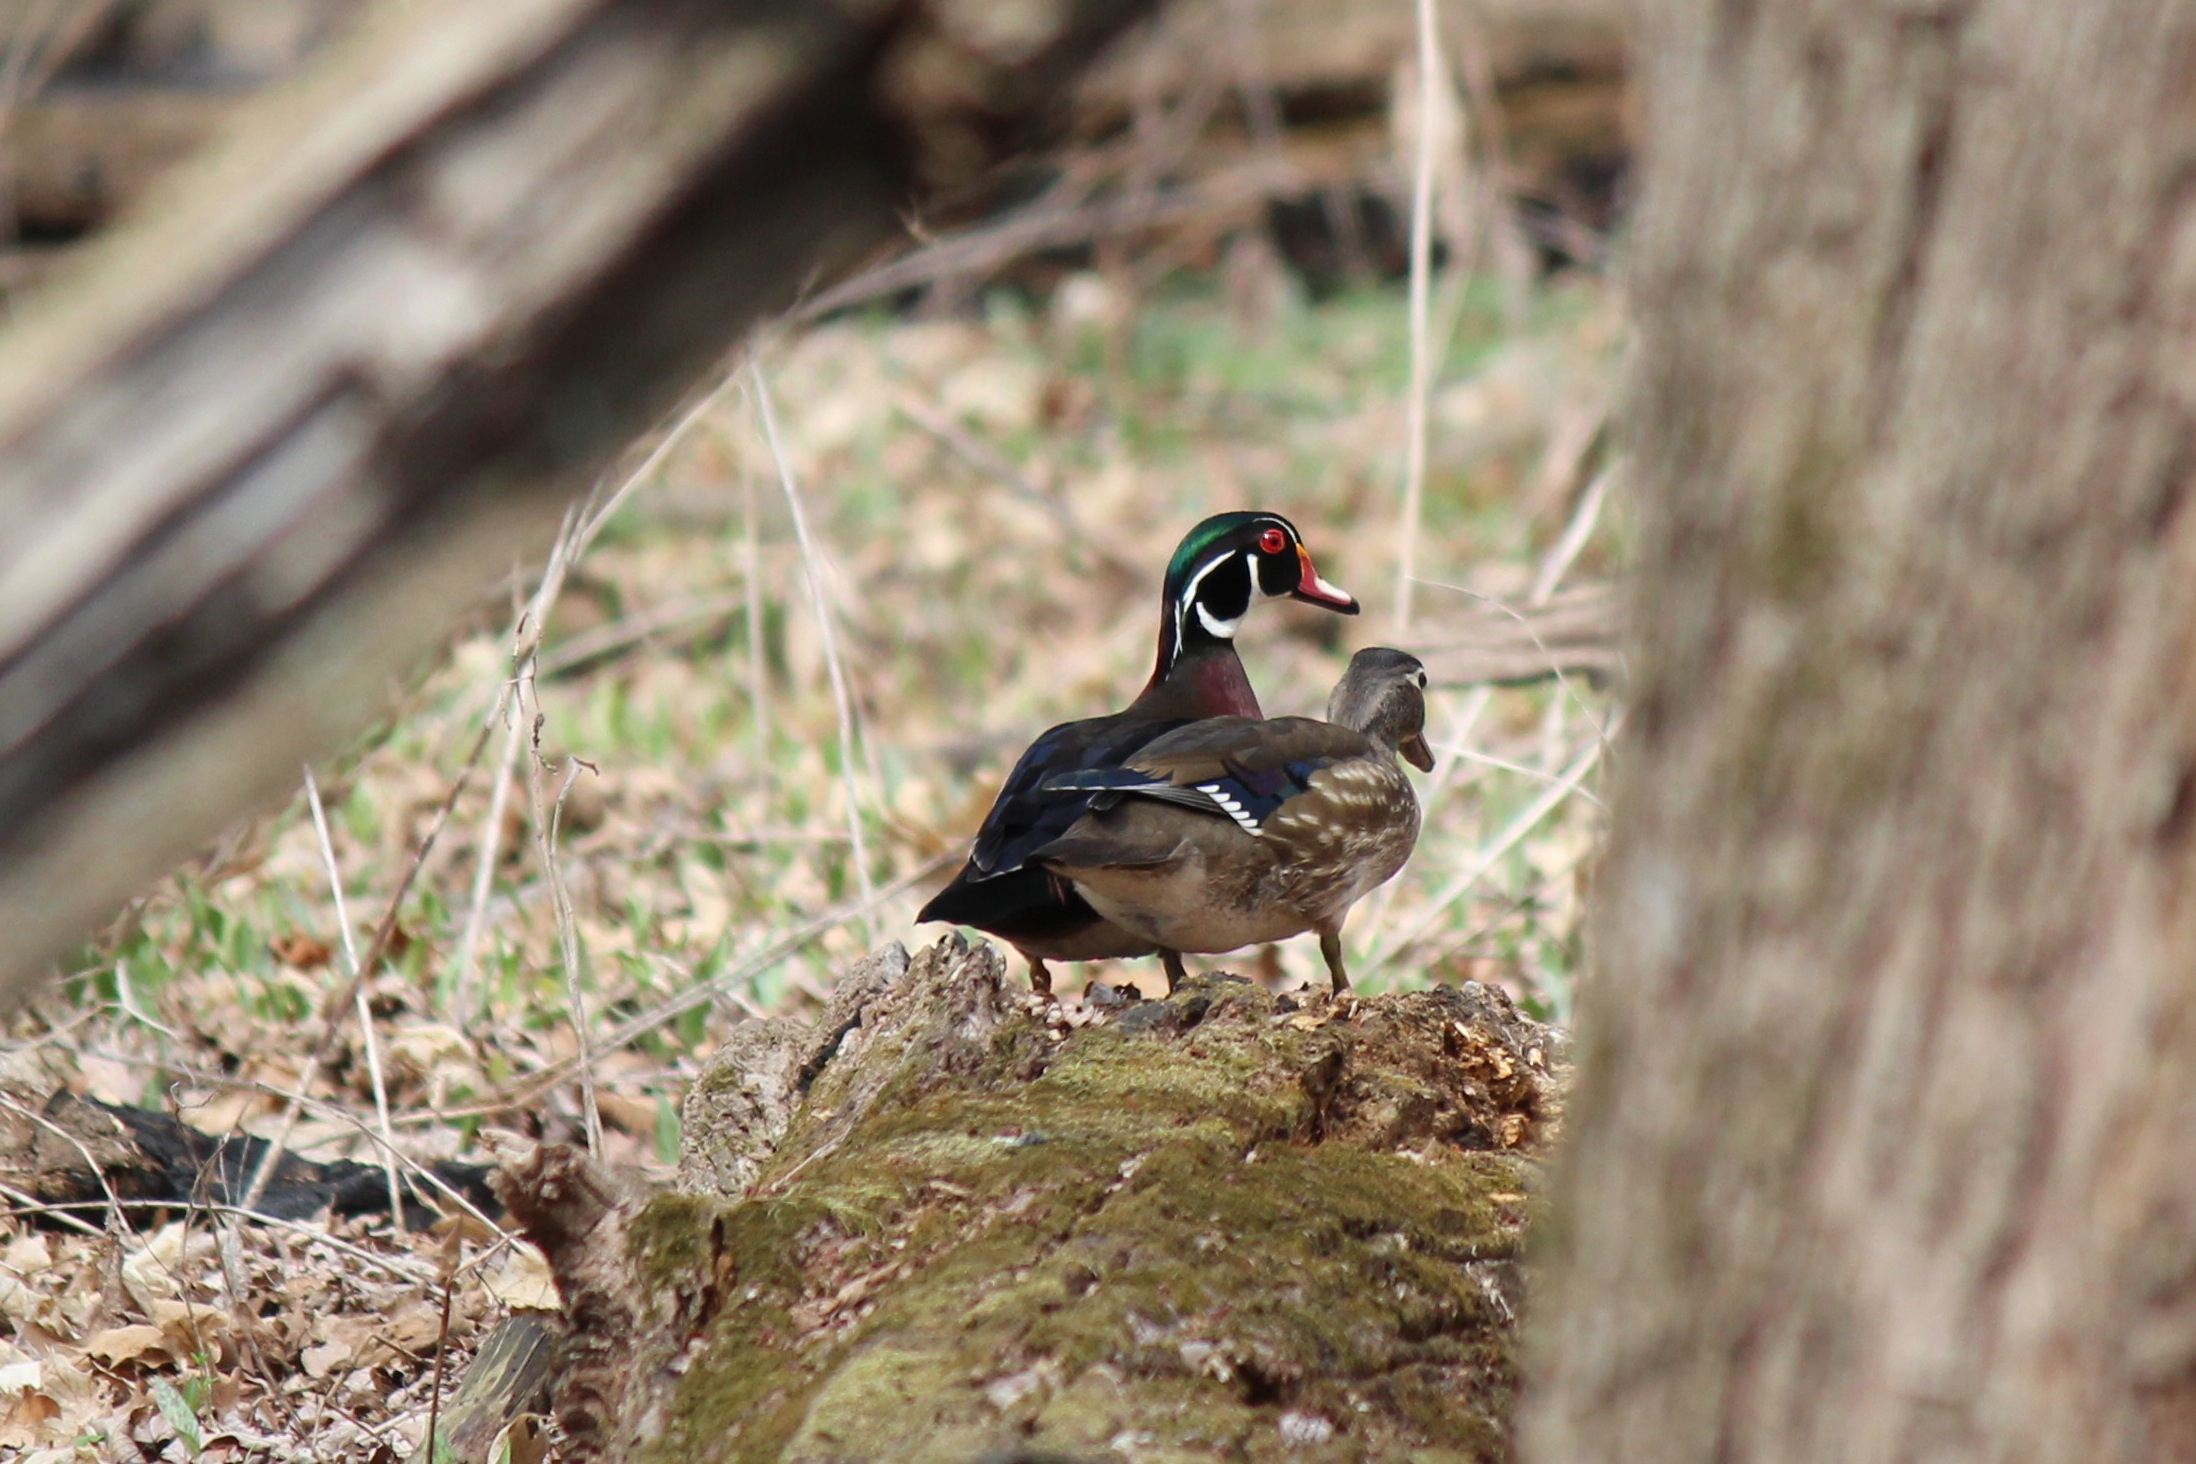 A pair of wood ducks in Big Woods just north of Pine Street nestle up to each other. Photo: Tom Peterson, TD